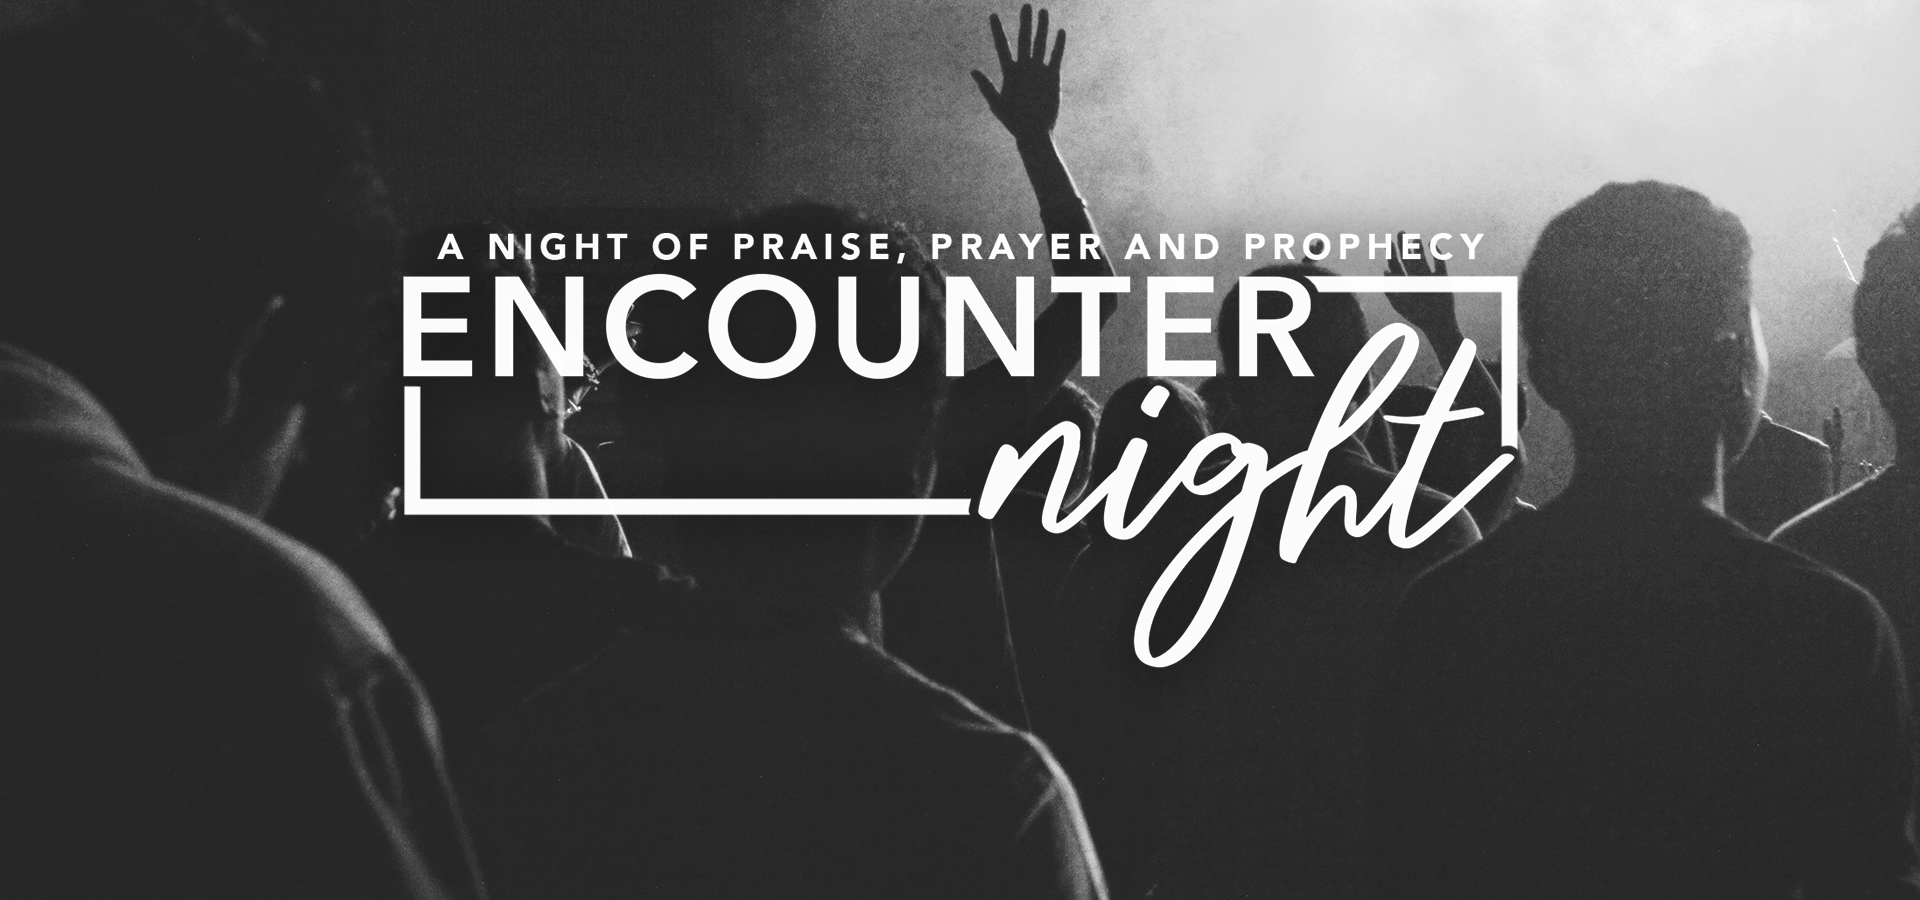 Encounter Night - A Night of Praise, Prayer and Prophecy Banner - Picture of Congregation in Praise and Worship